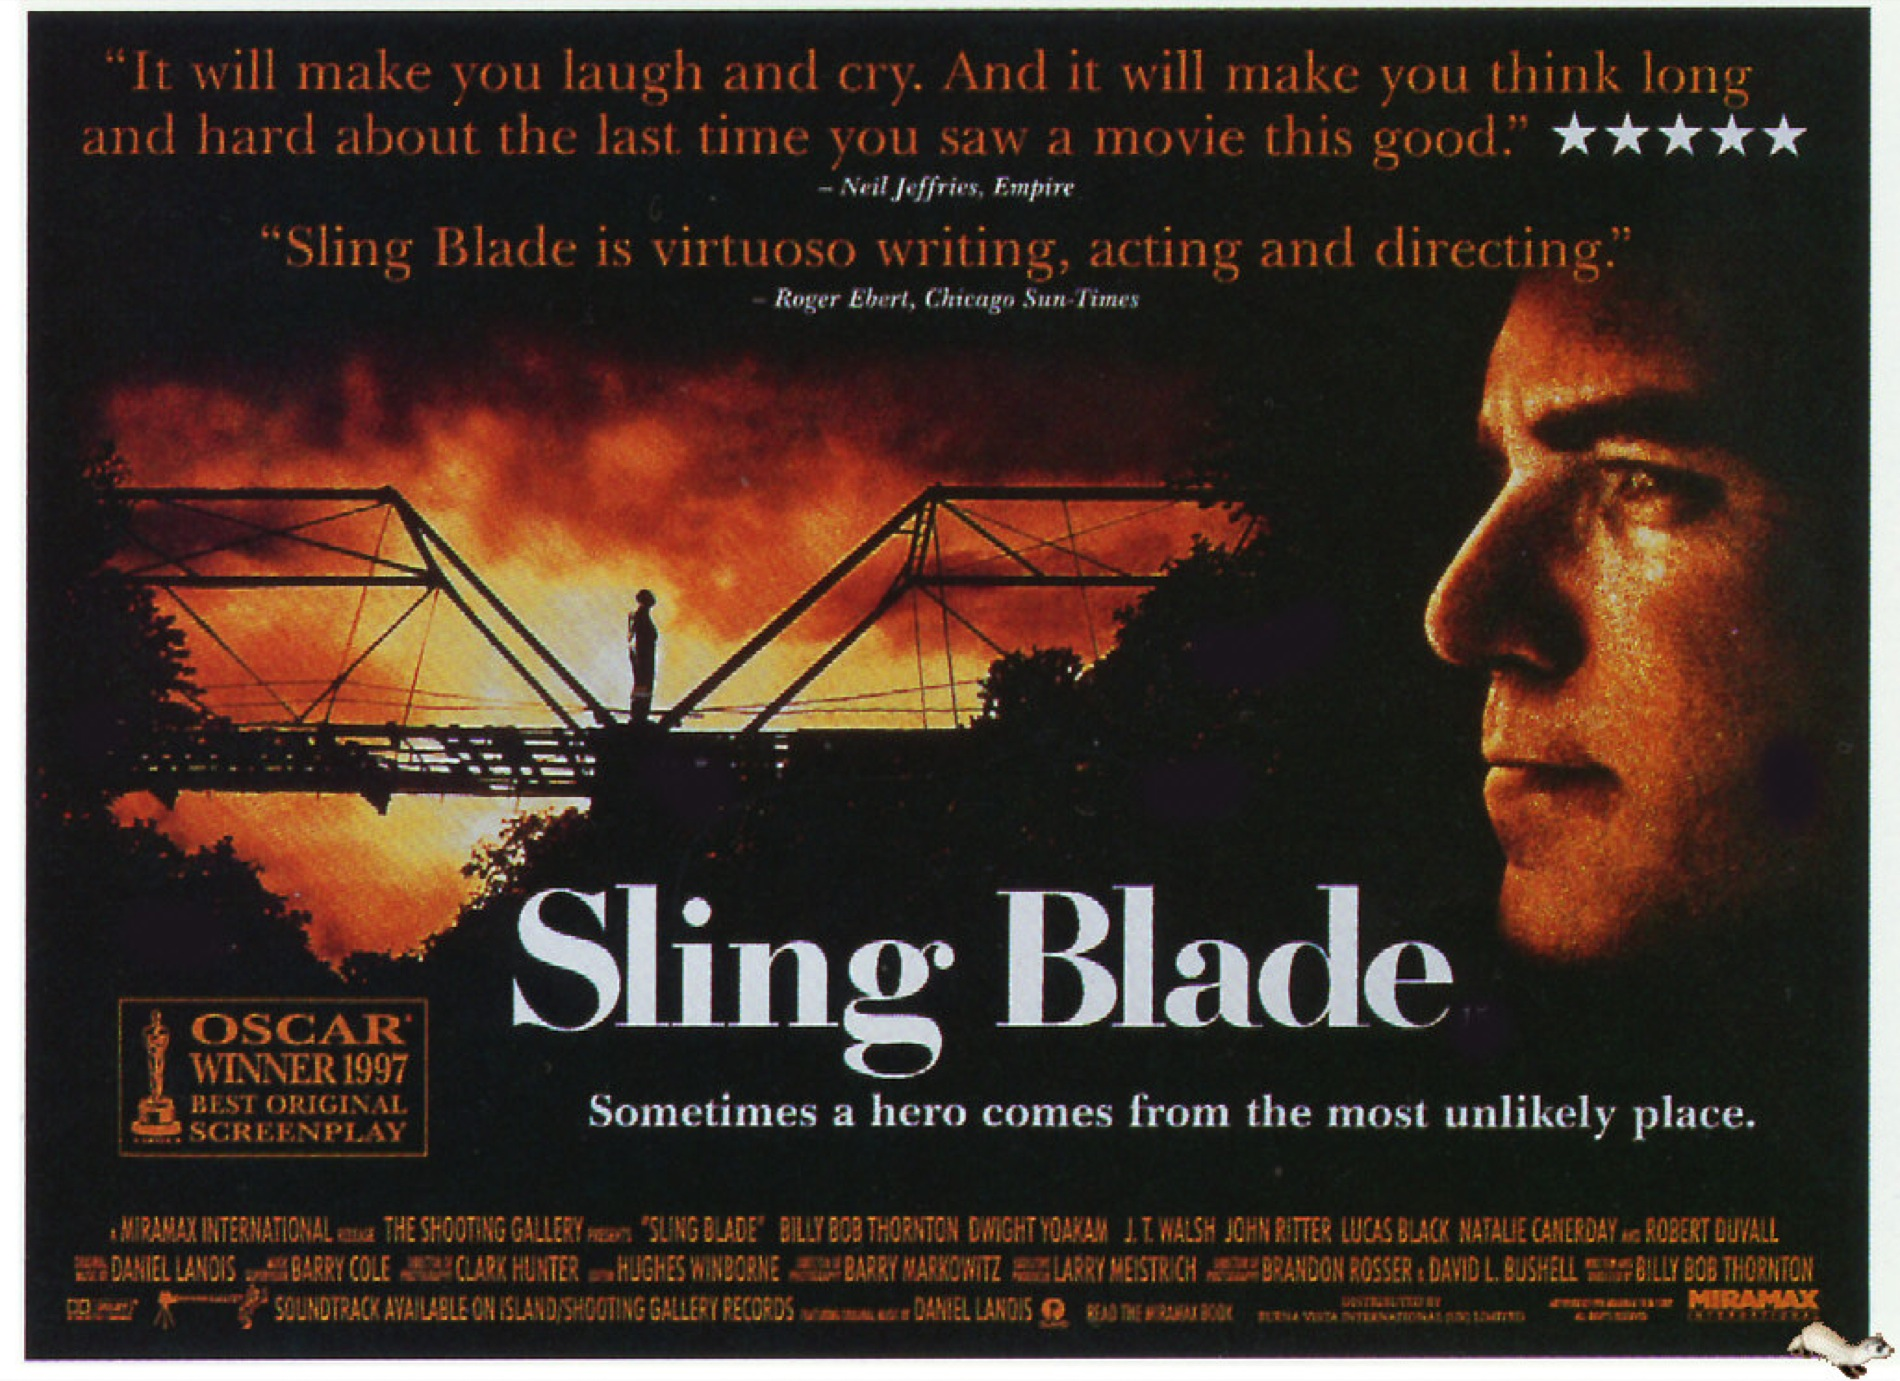 characterization of the film sling blade Sling blade is a near perfect piece of cinema, and is billy bob thornton's finest hour as an actor a stunning film that is quite unforgettable, sling blade has heart and charm due to the great.